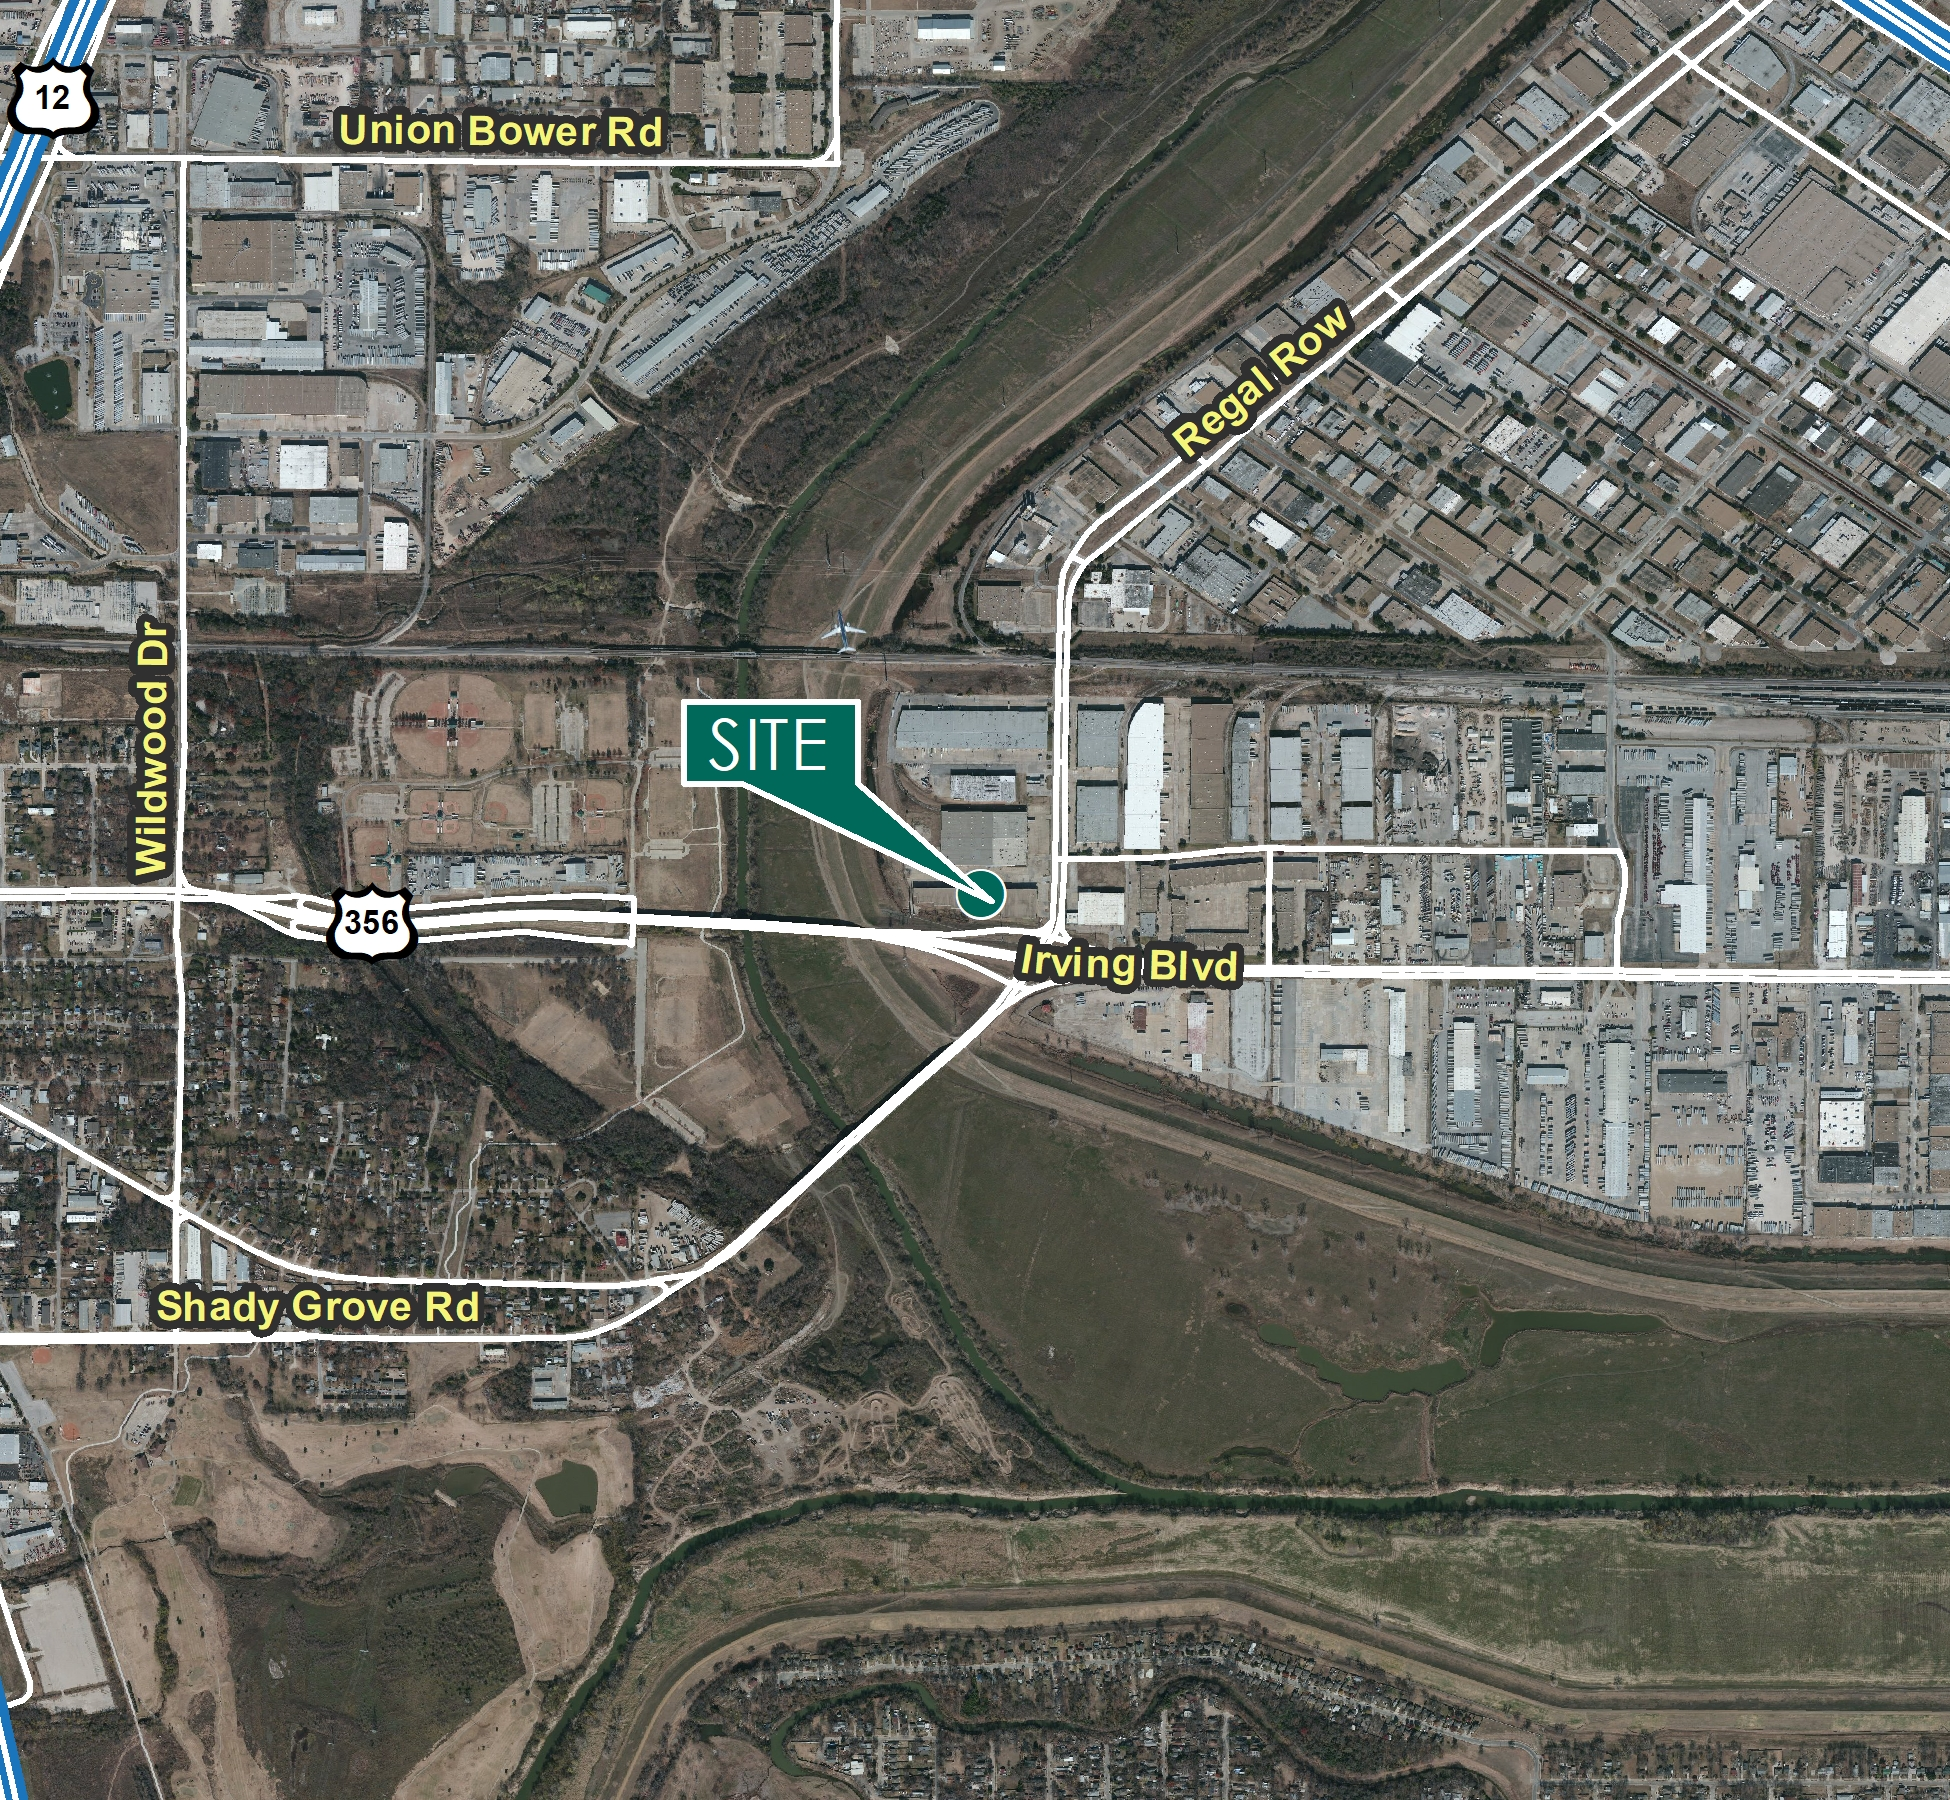 Prologis-Stemmons-1-DAL00401-109-111-Regal-Row-Suite-111_AerialMap.jpg